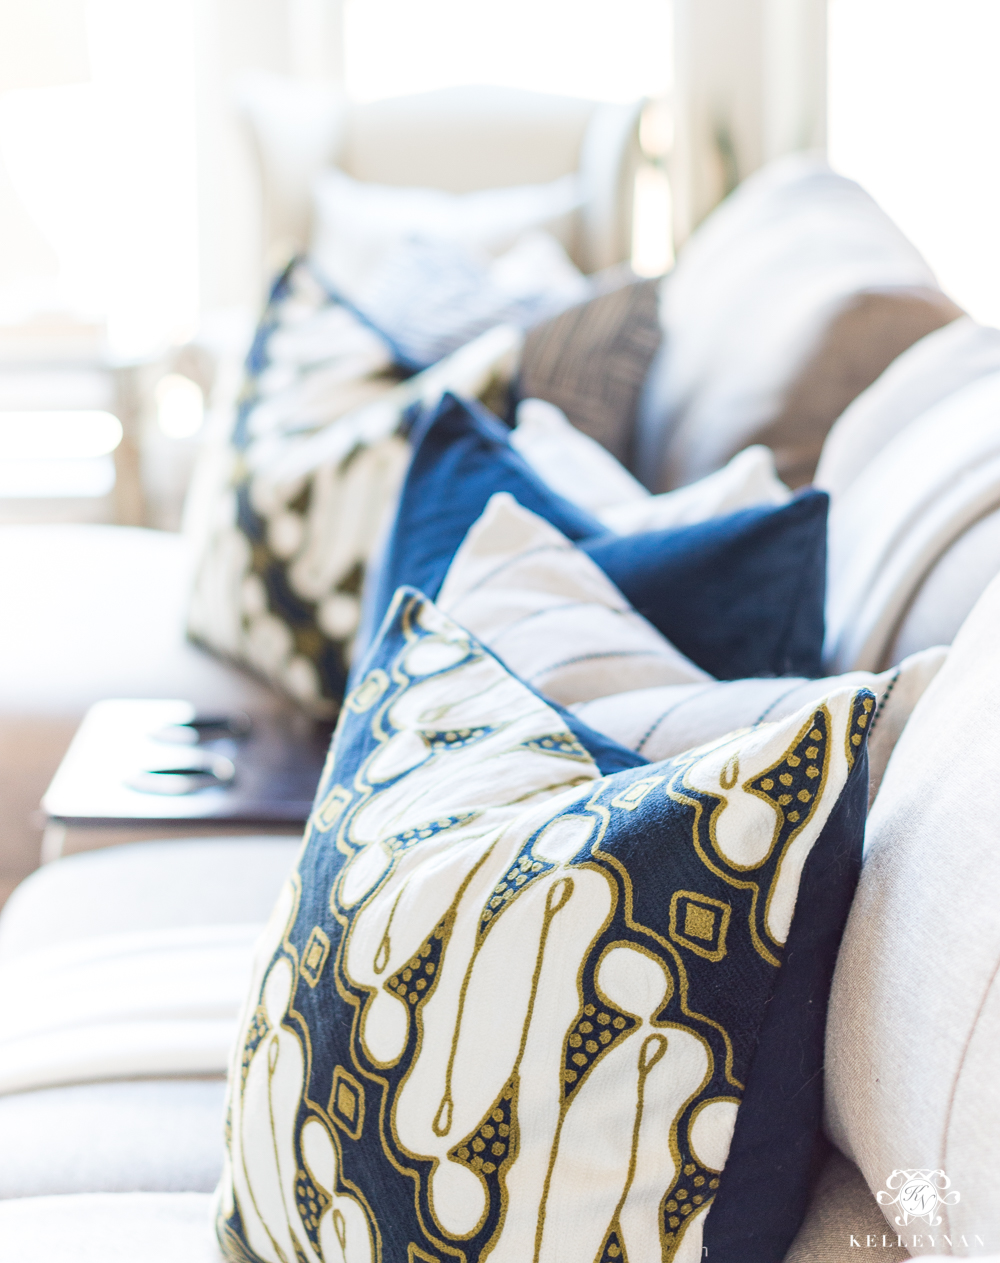 Favorite Places to Shop for Throw Pillows - From Cheap and Inexpensive to Quality Decorative Sofa Pillows